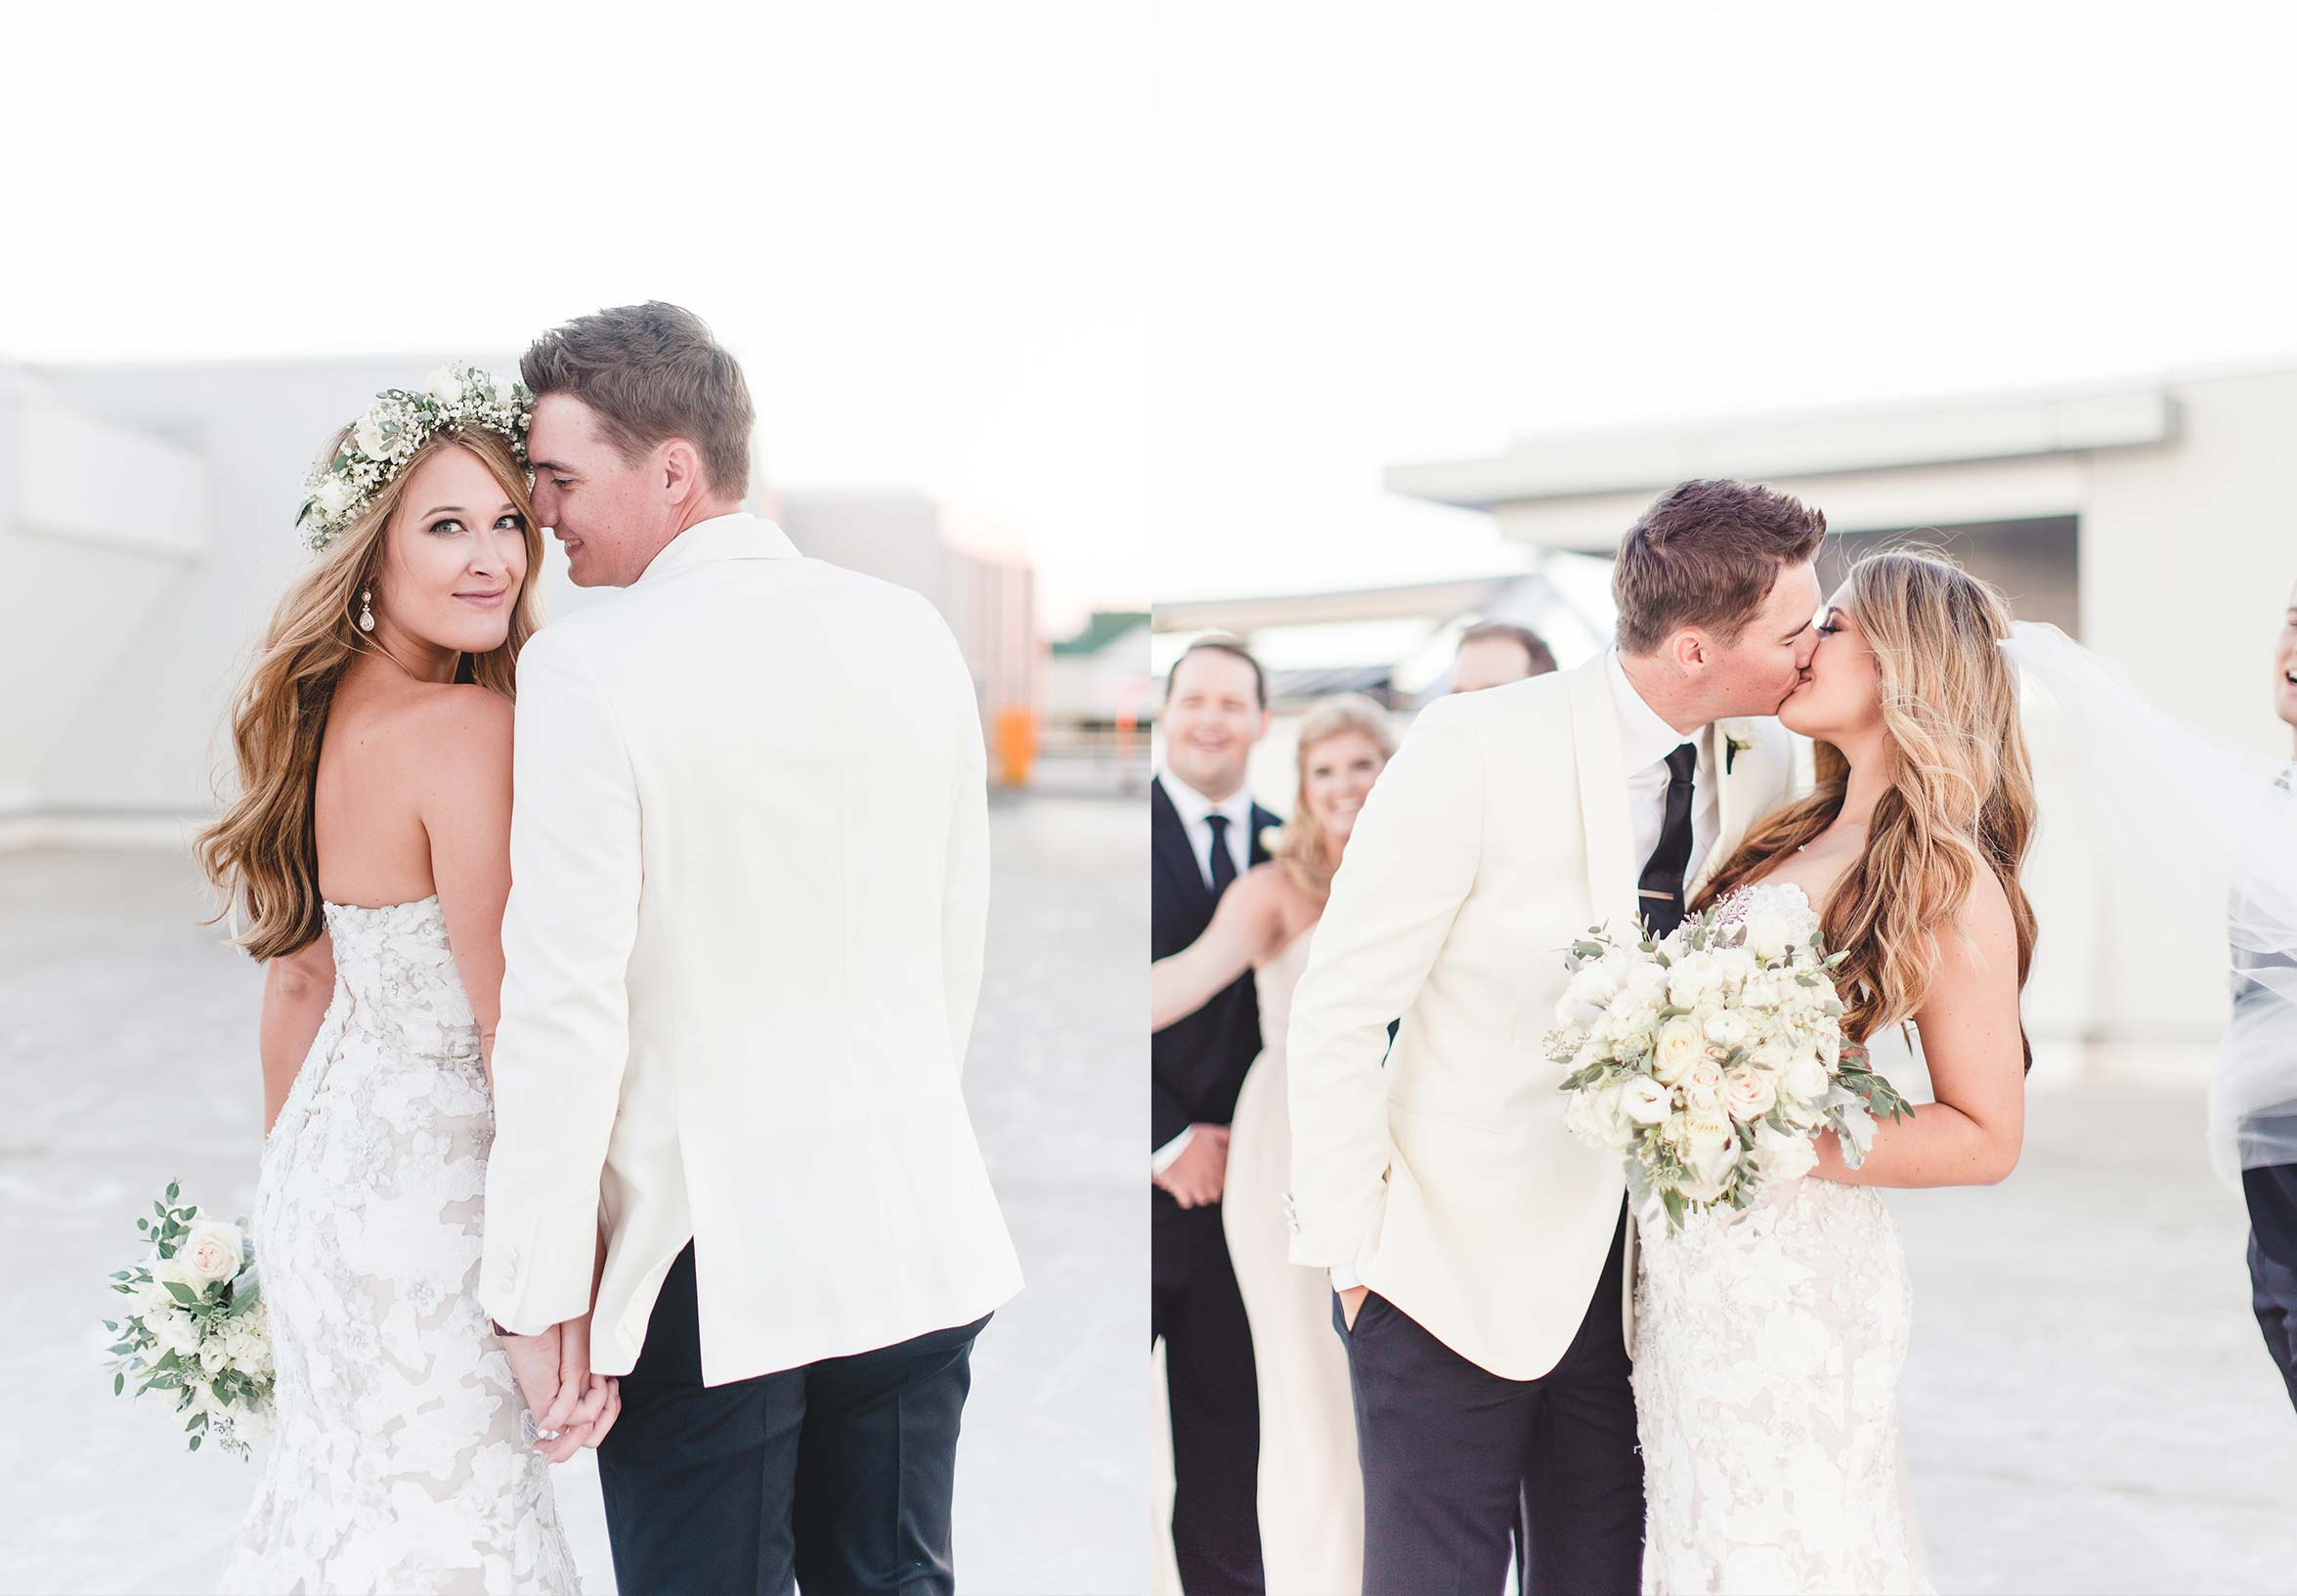 fashion-blogger-cameron-proffitt-has-romantic-dallas-rooftop-wedding-with-mixed-bridesmaids-dresses-and-neutral-color-palette-49